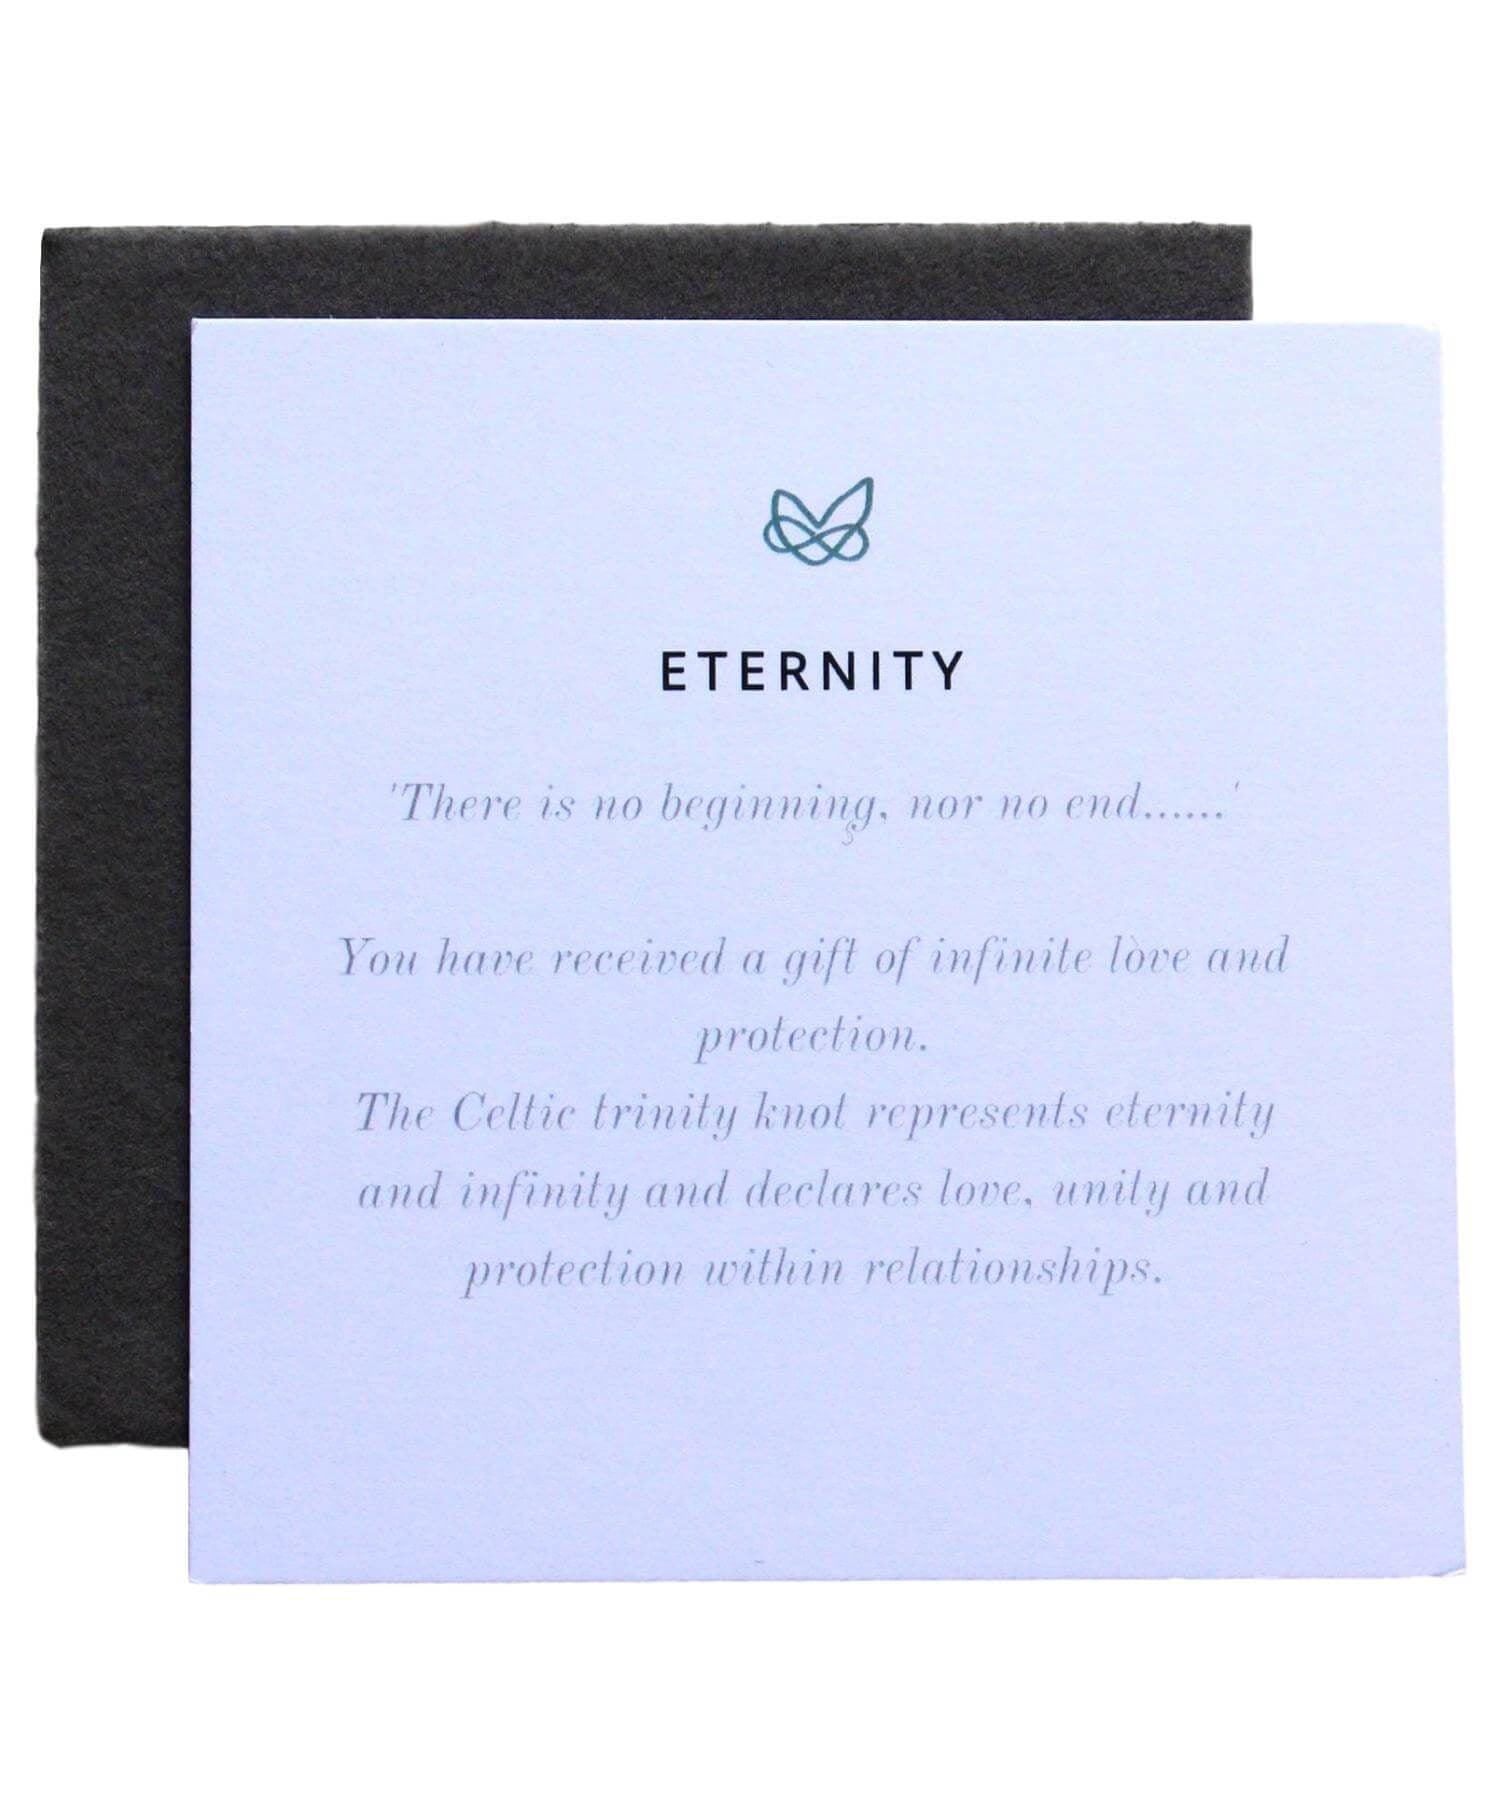 Eternity - Silver Cufflinks - [Native] - Jewellery - Irish Gifts